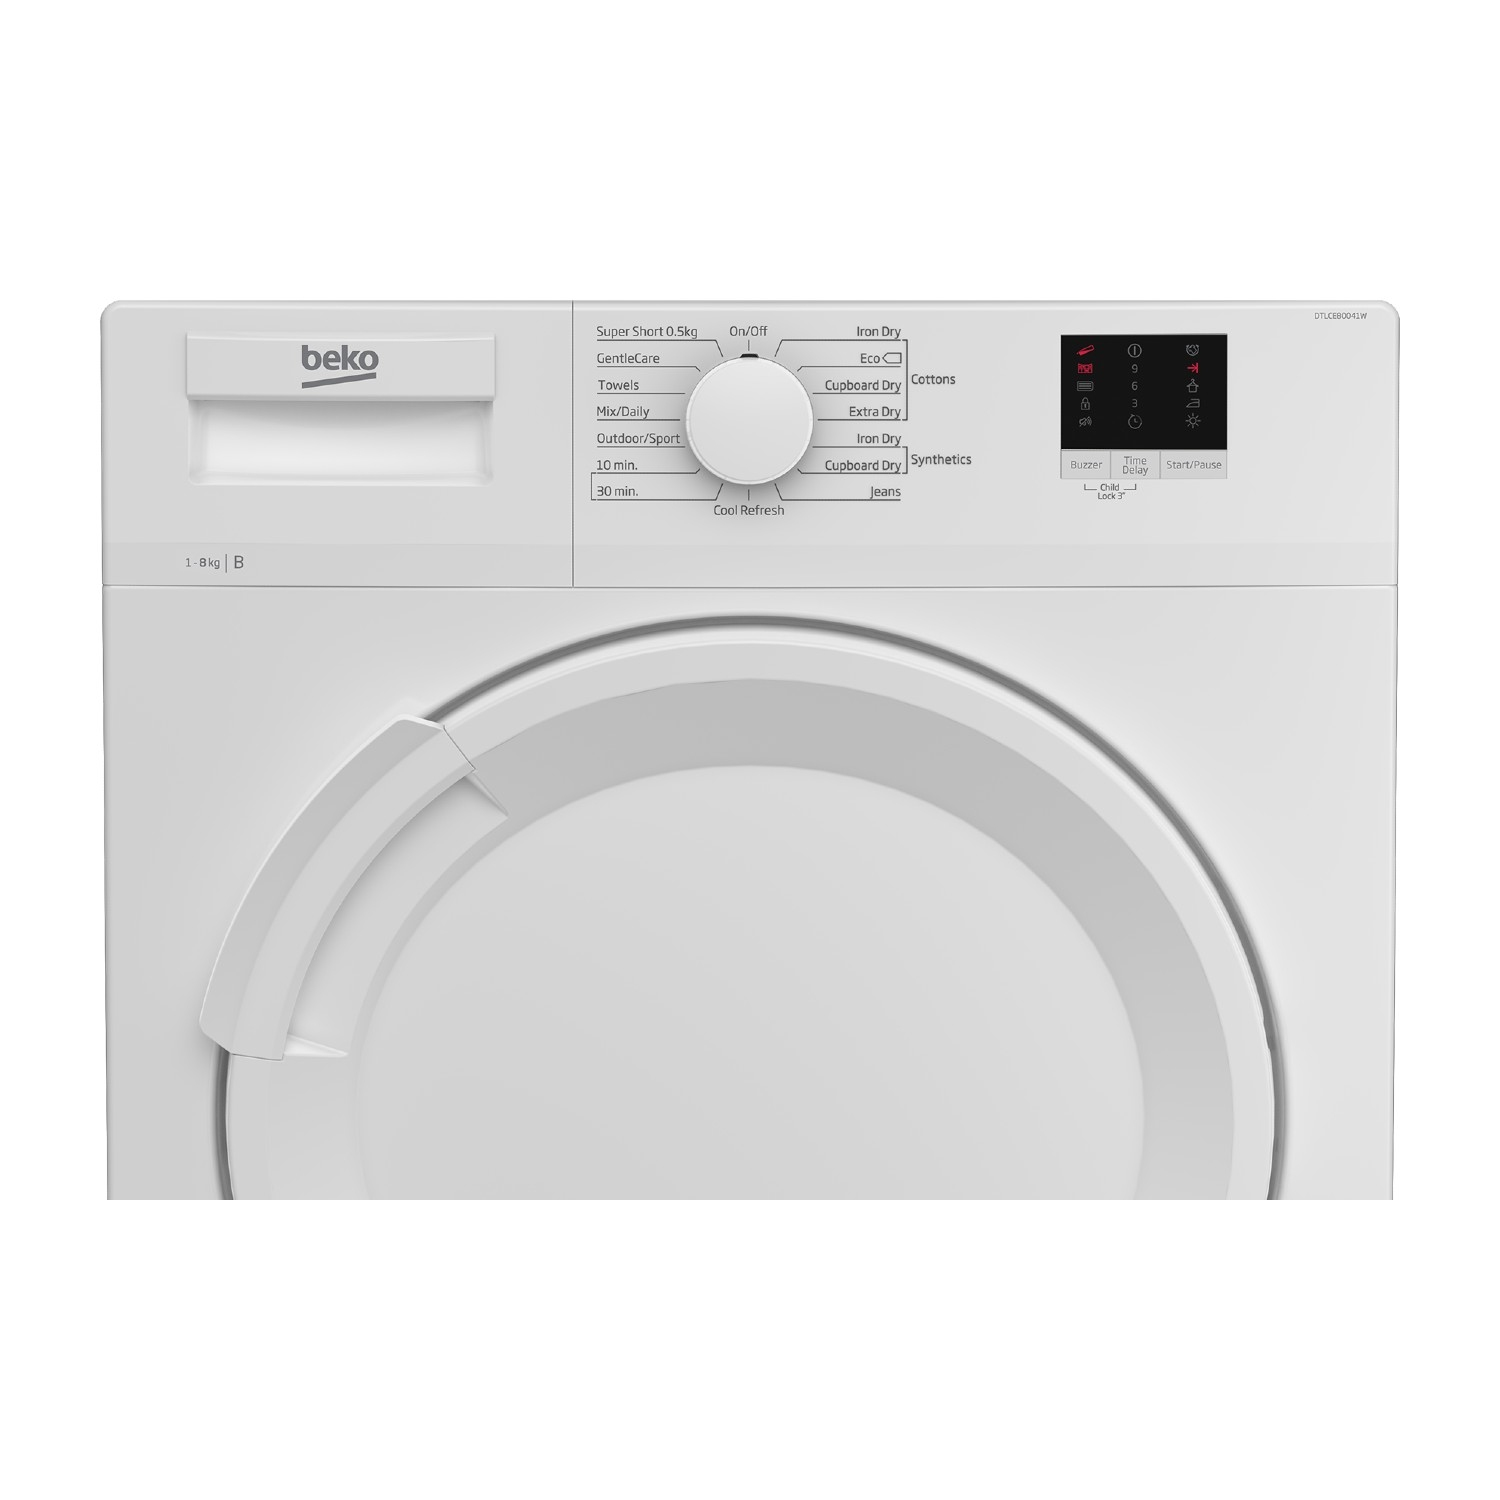 Beko DTLCE80041W 8kg Condenser Tumble Dryer - White - 3